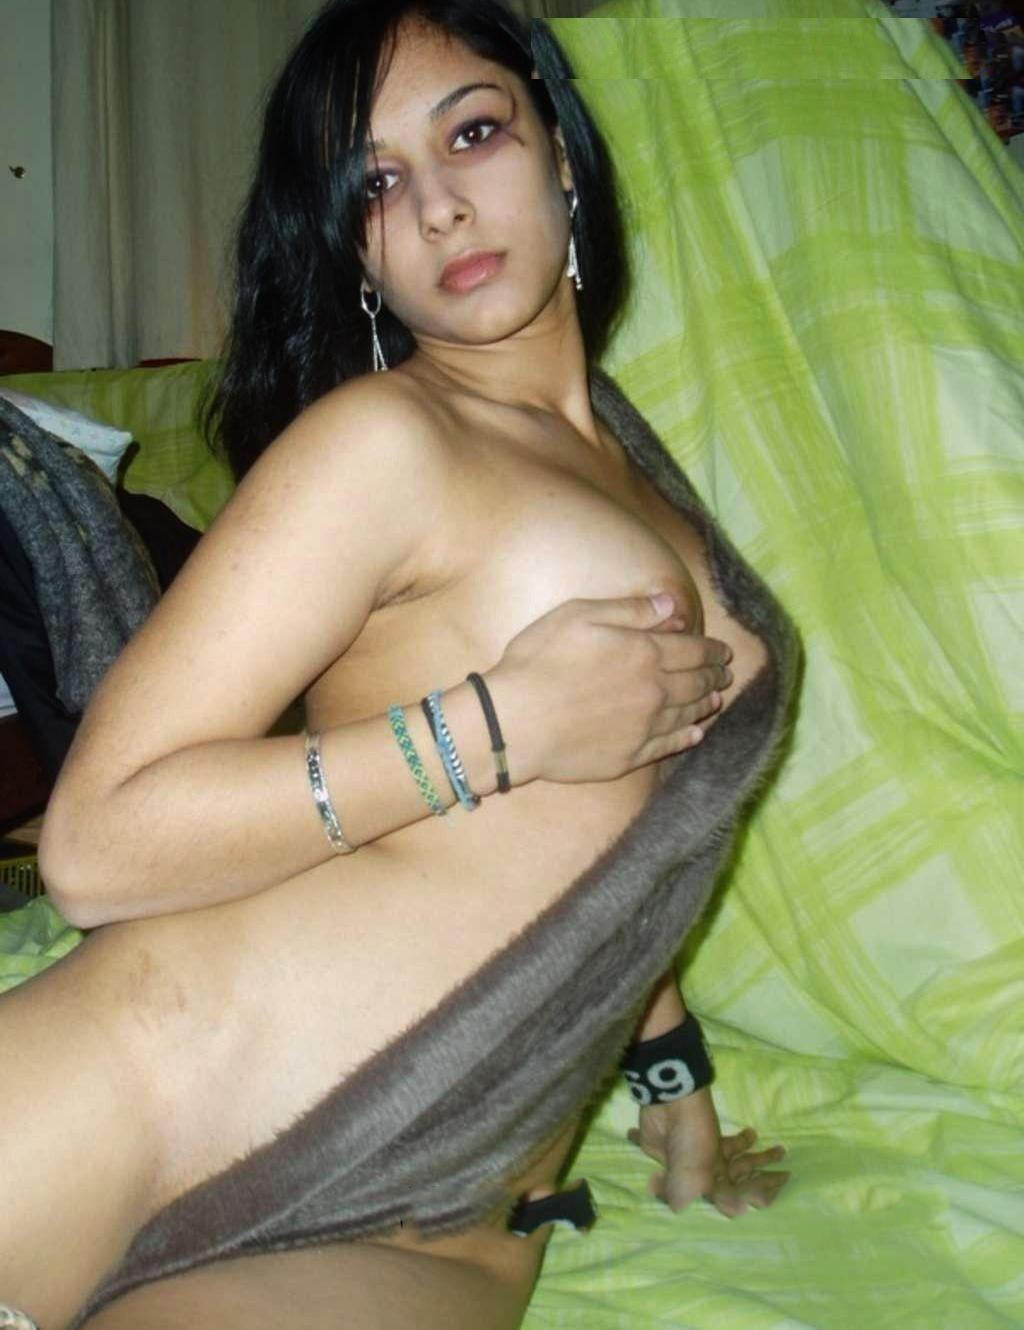 With Beautiful indian women porn